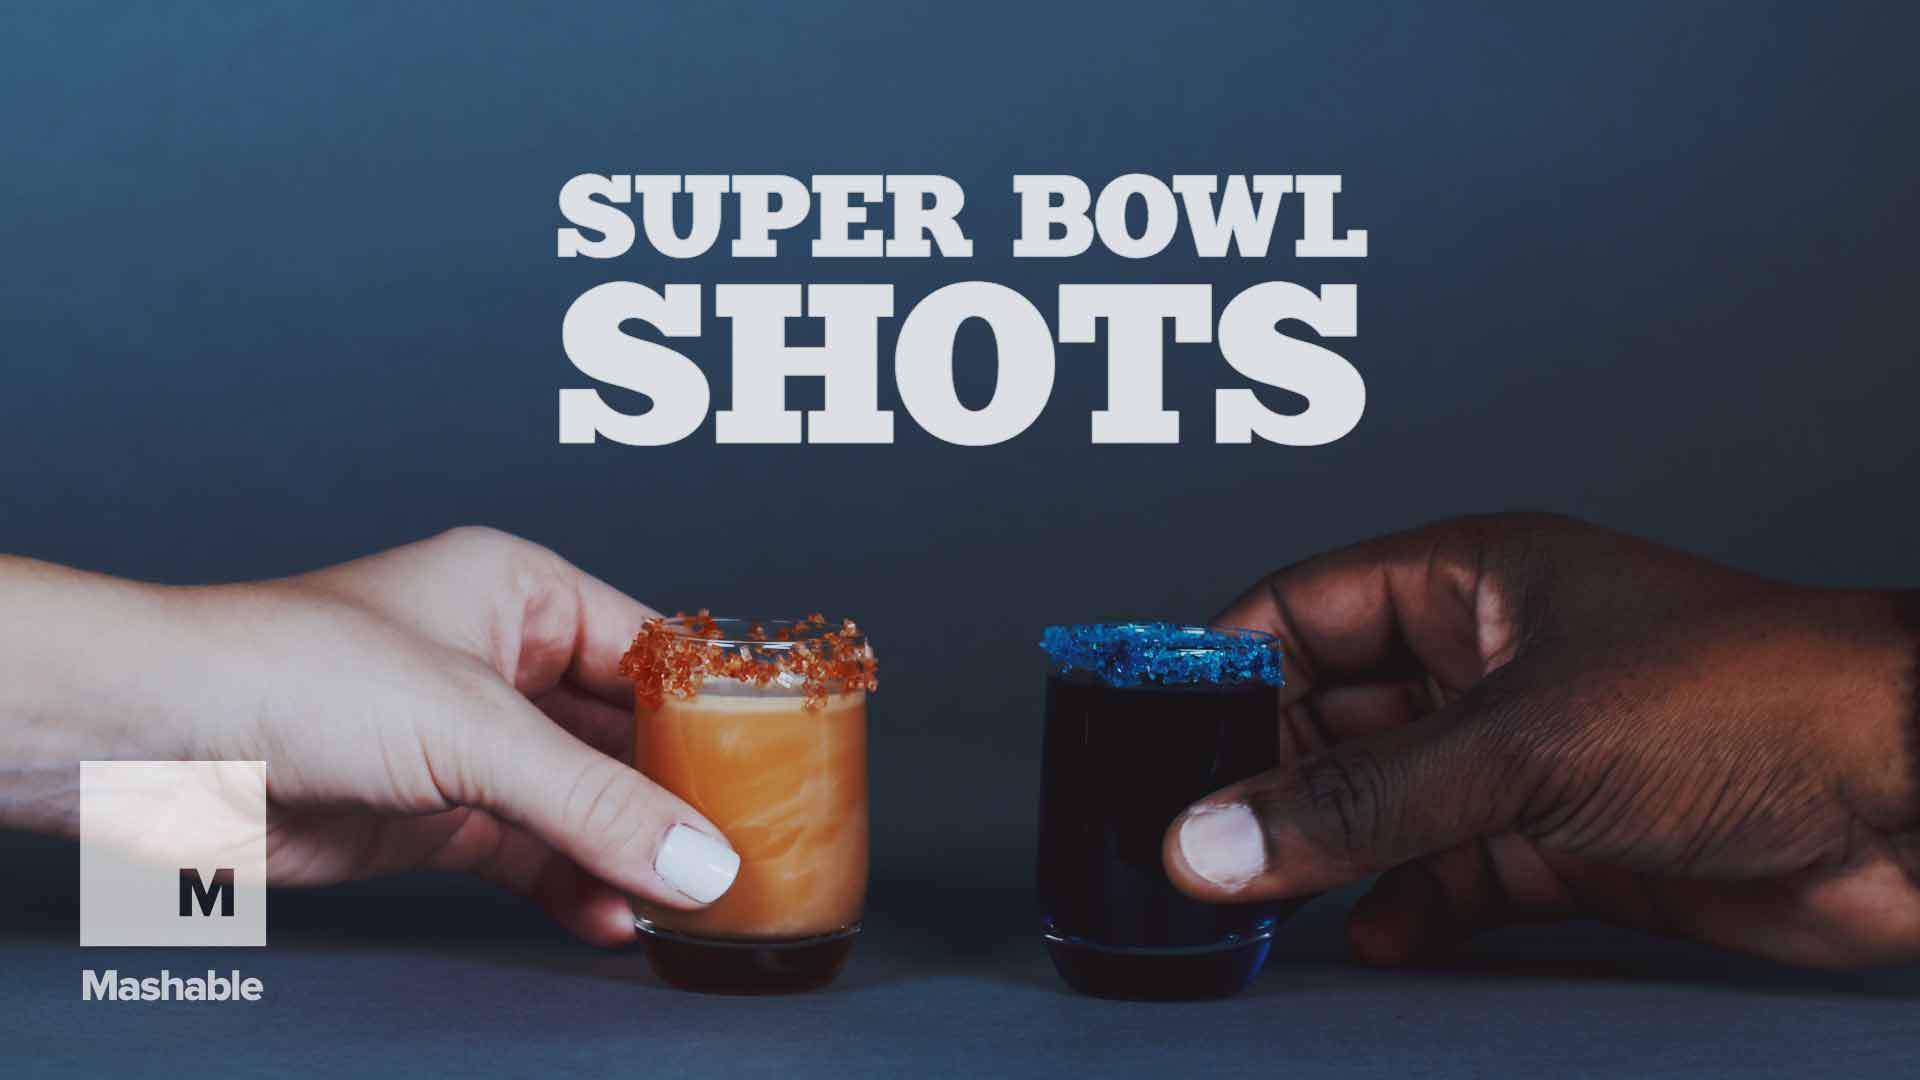 Tasty Tequila Shot Recipes for Your Super Bowl Sunday Party